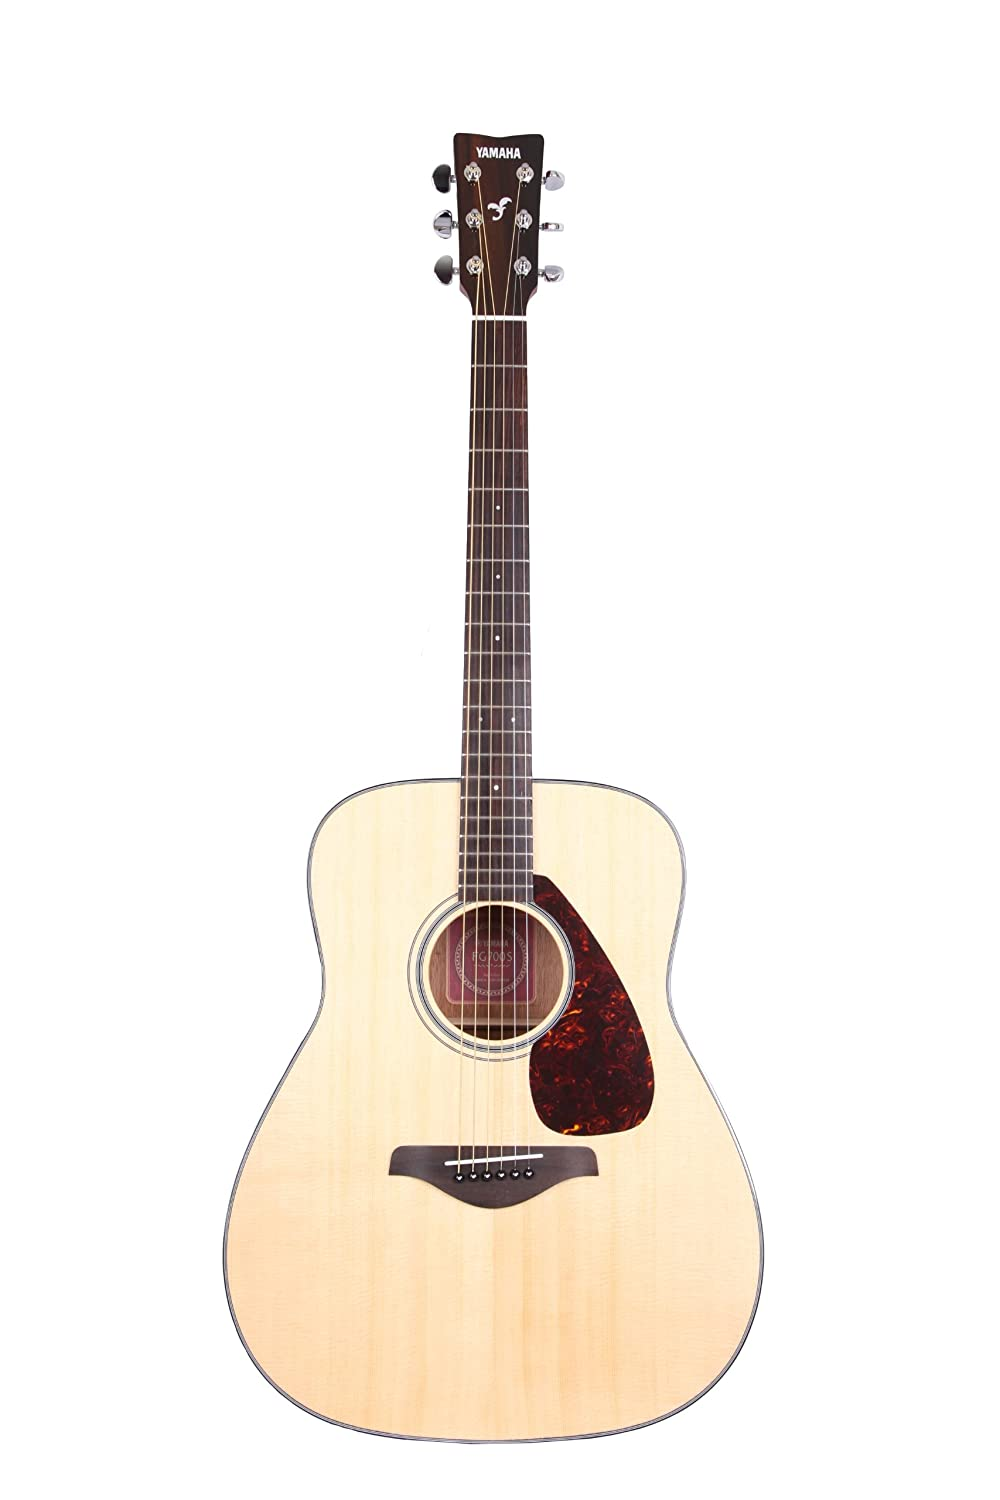 Yamaha FG700S Solid Top Acoustic Guitar, Natural - good beginner acoustic guitar